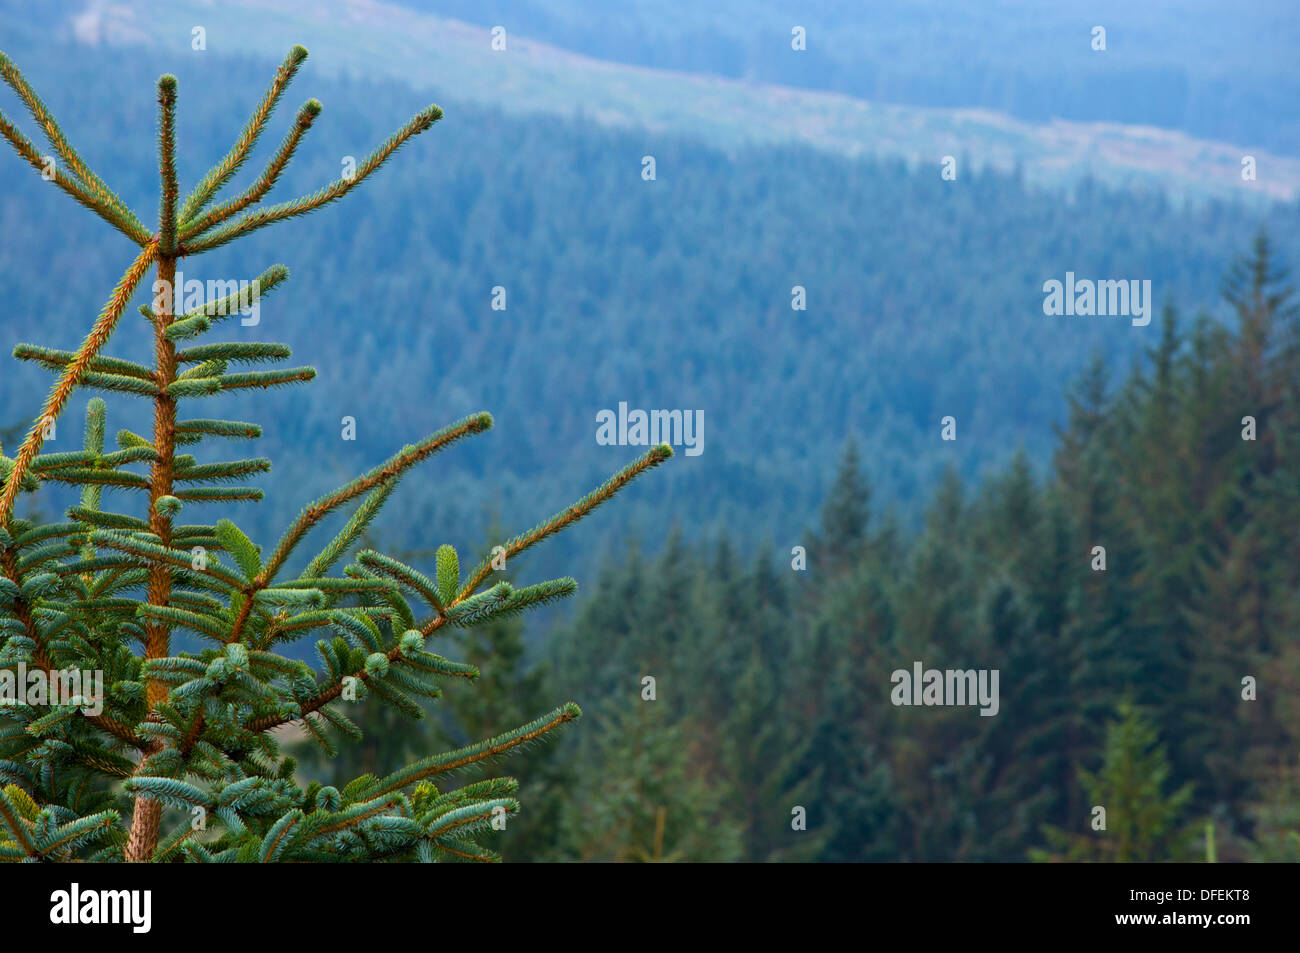 Norway spruce Picea abies growing in Galloway Forest Scotland - Stock Image